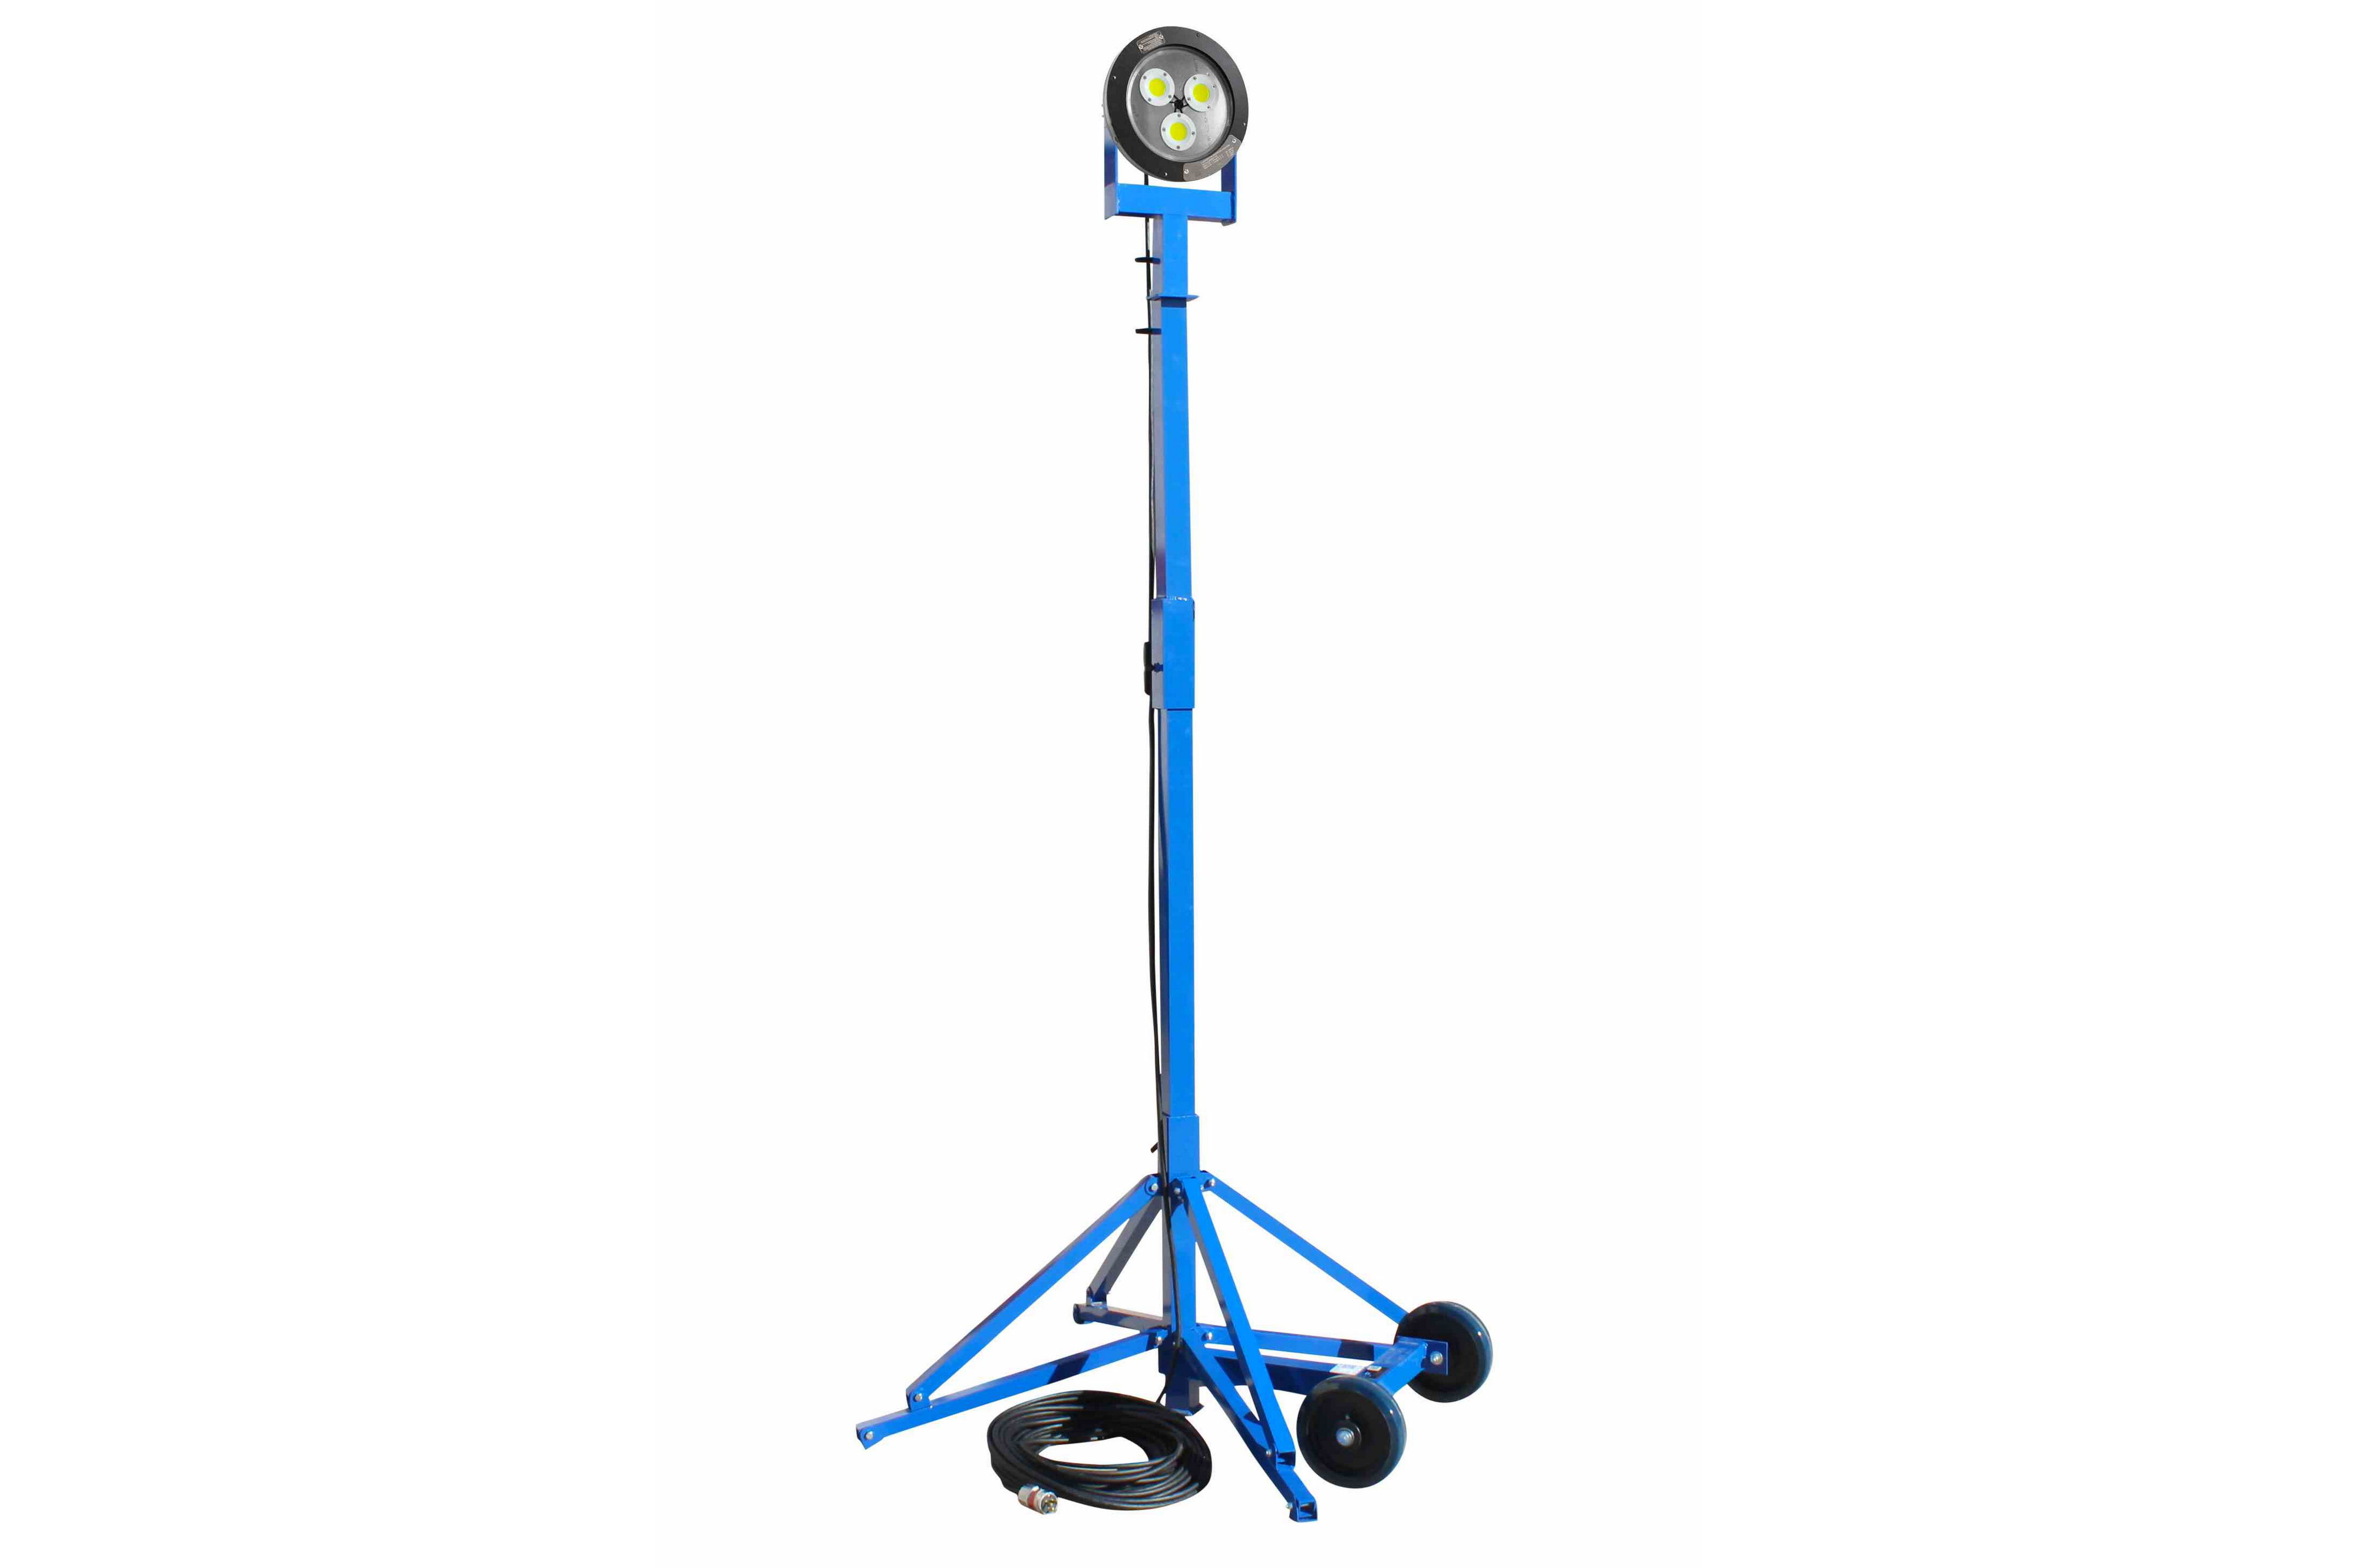 80w Explosion Proof Led Light Tower